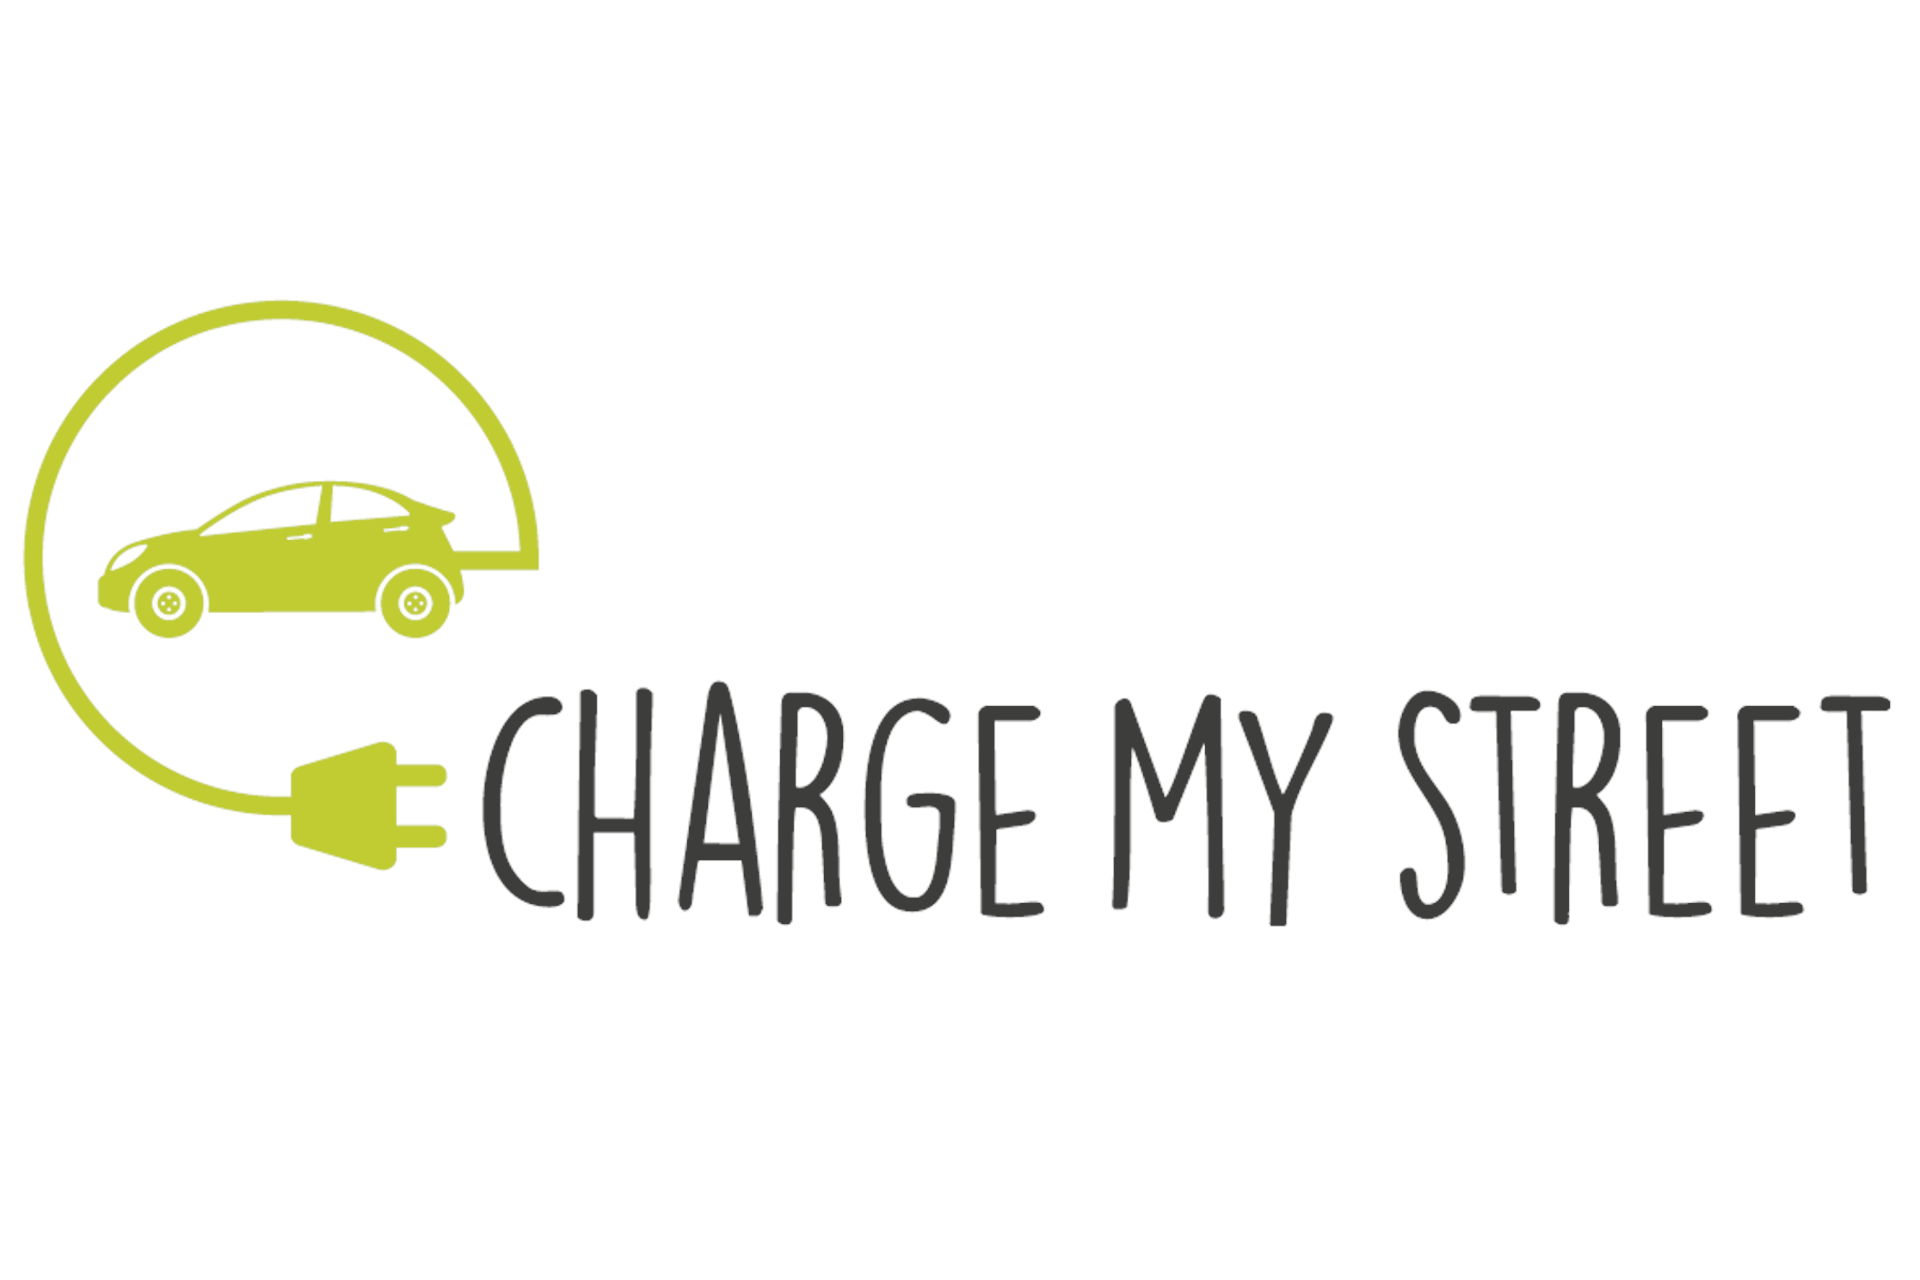 Charge My street logo